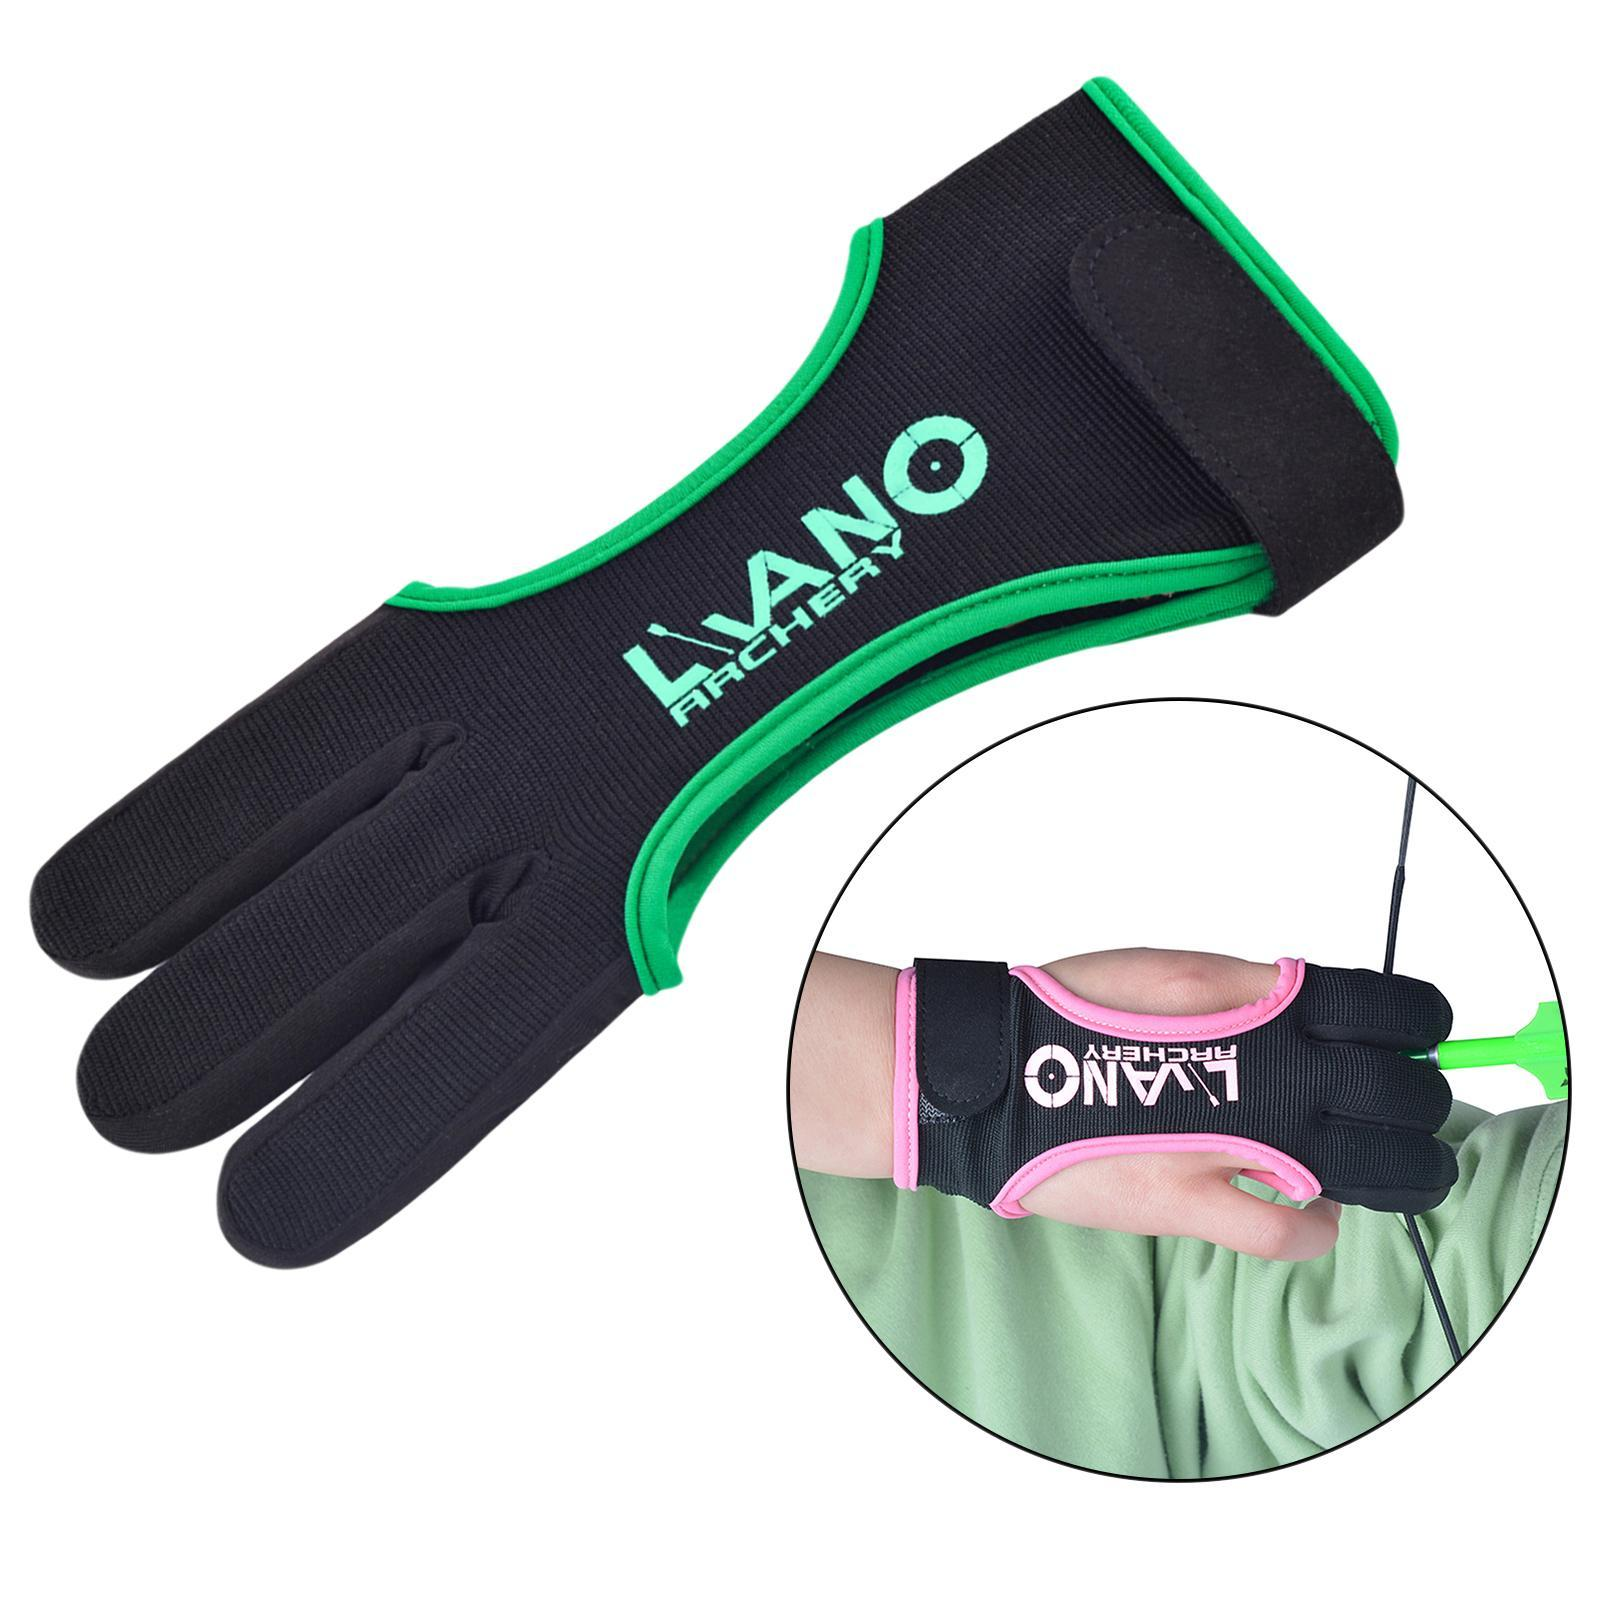 thumbnail 90 - Archery Glove for Recurve & Compound Bow 3 Finger Guard for Women Men Youth